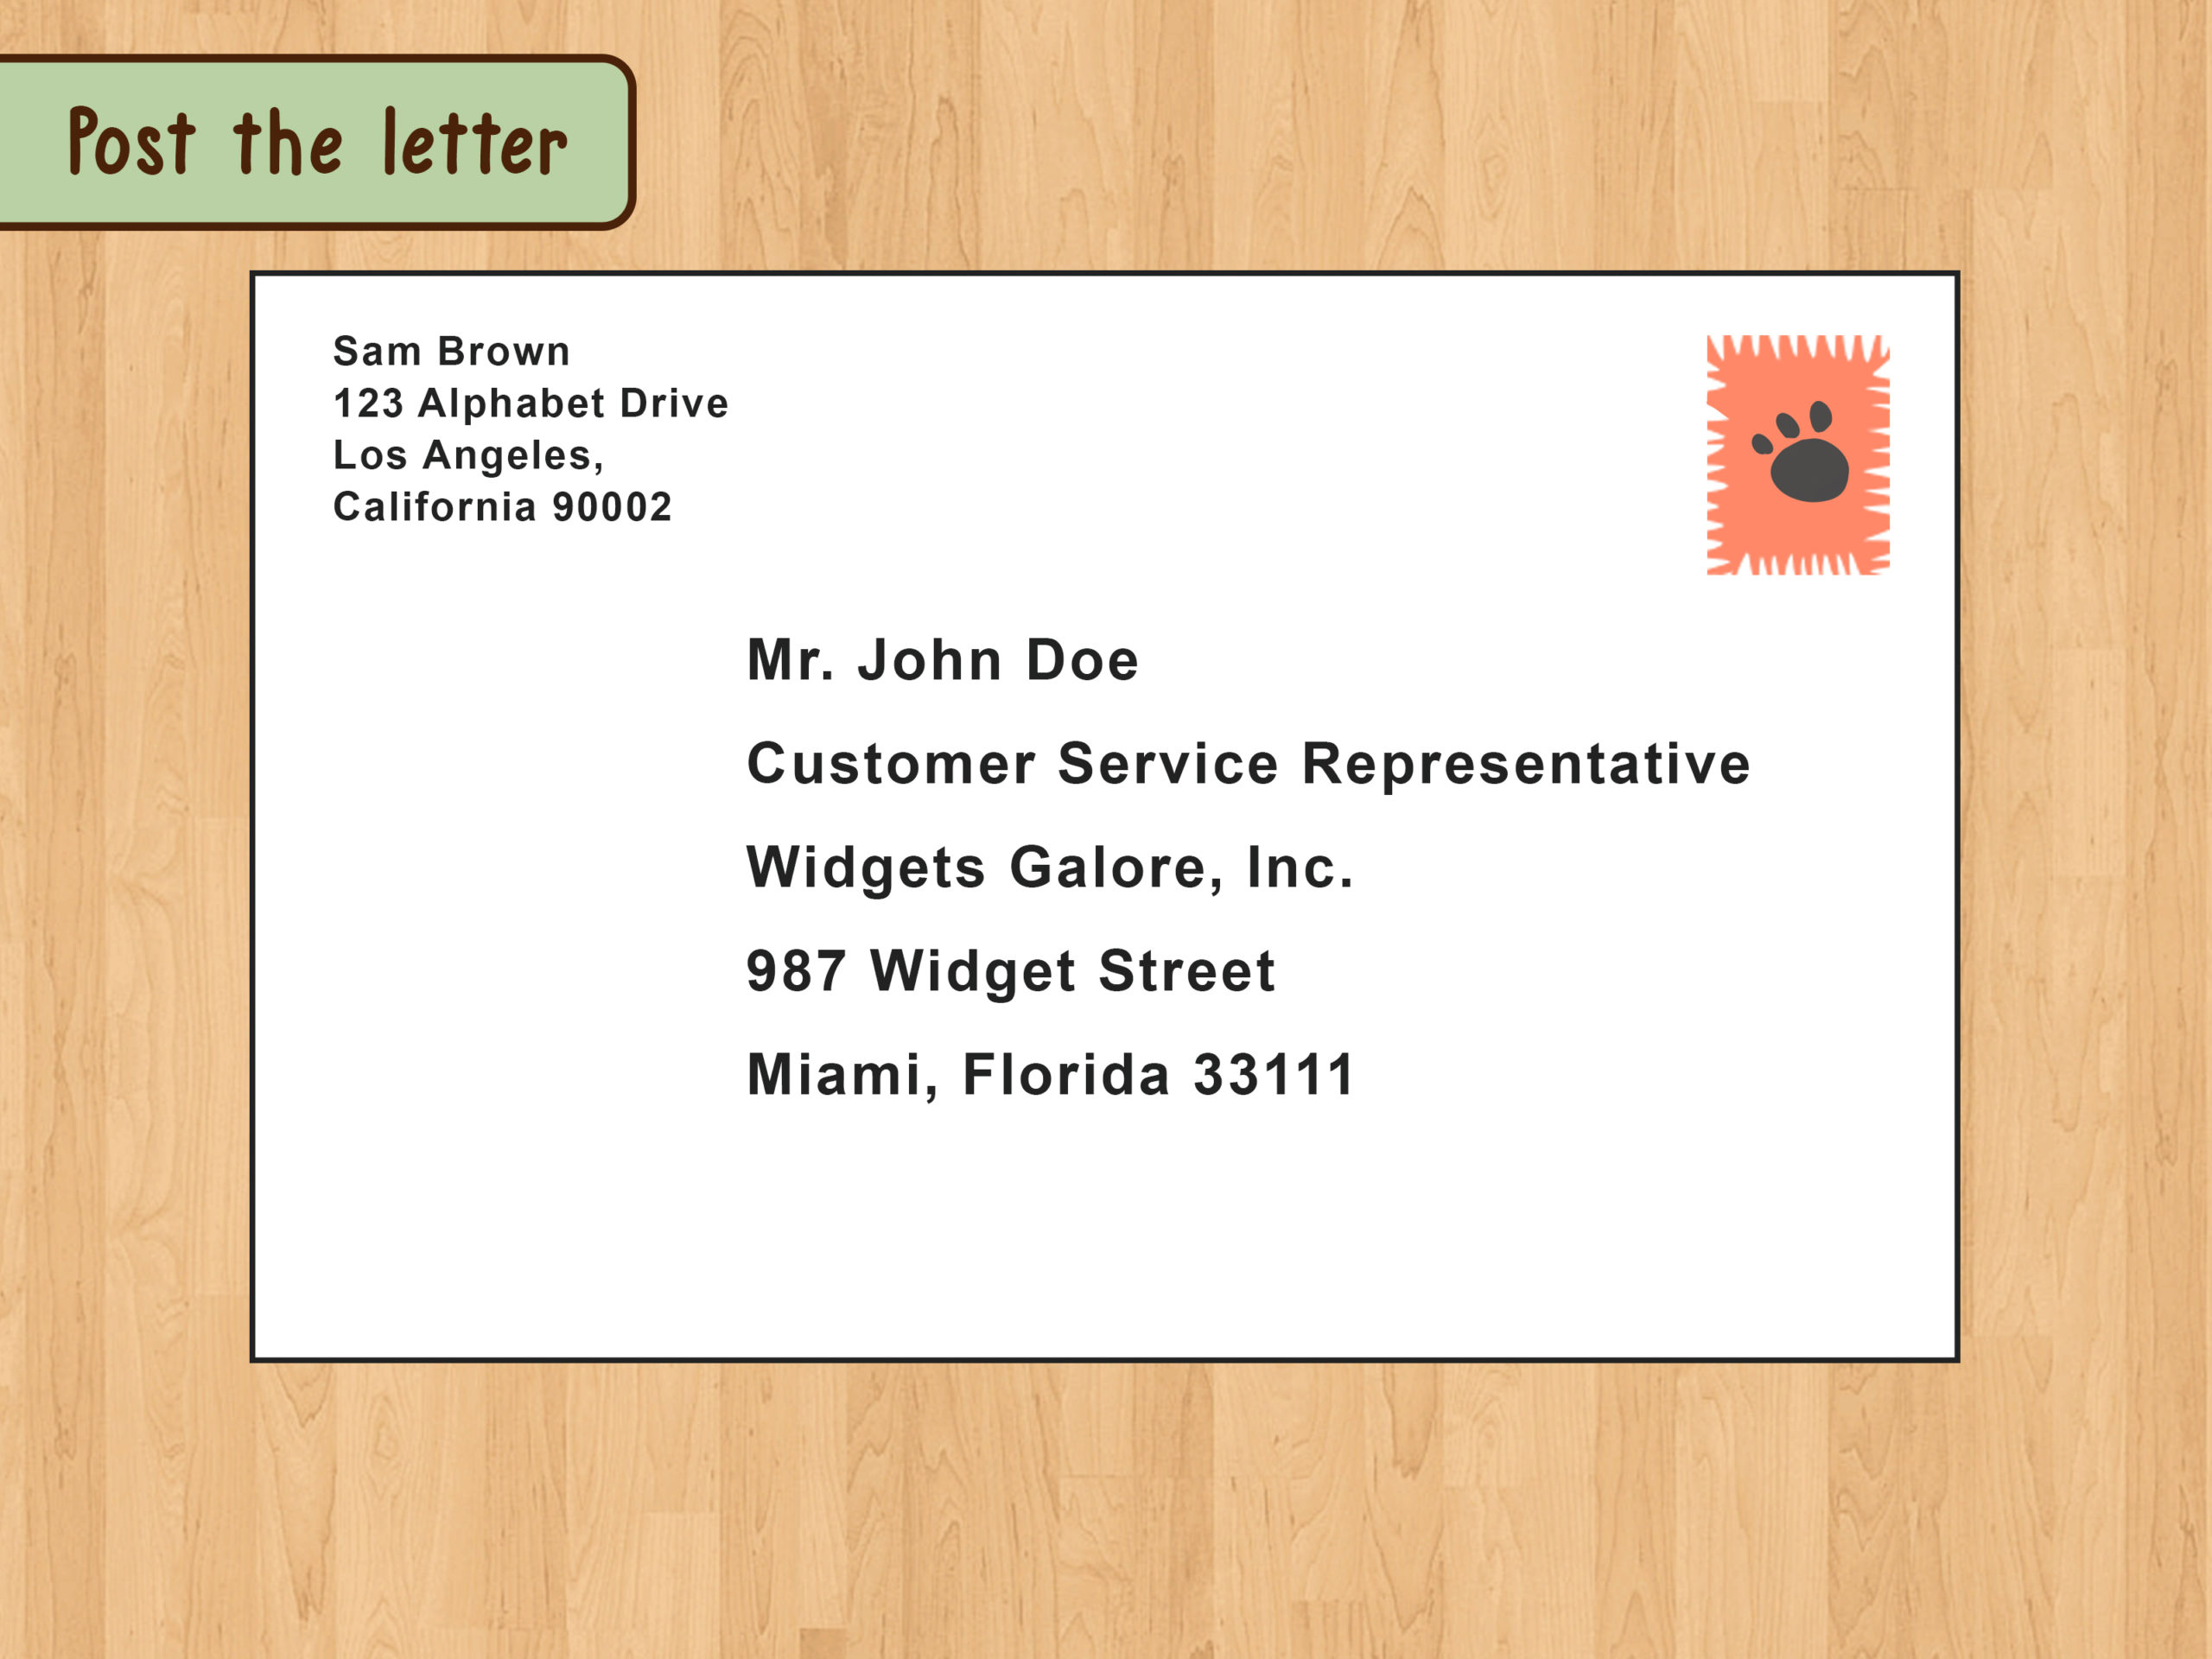 Addressing An Envelope To A Business Scrumps